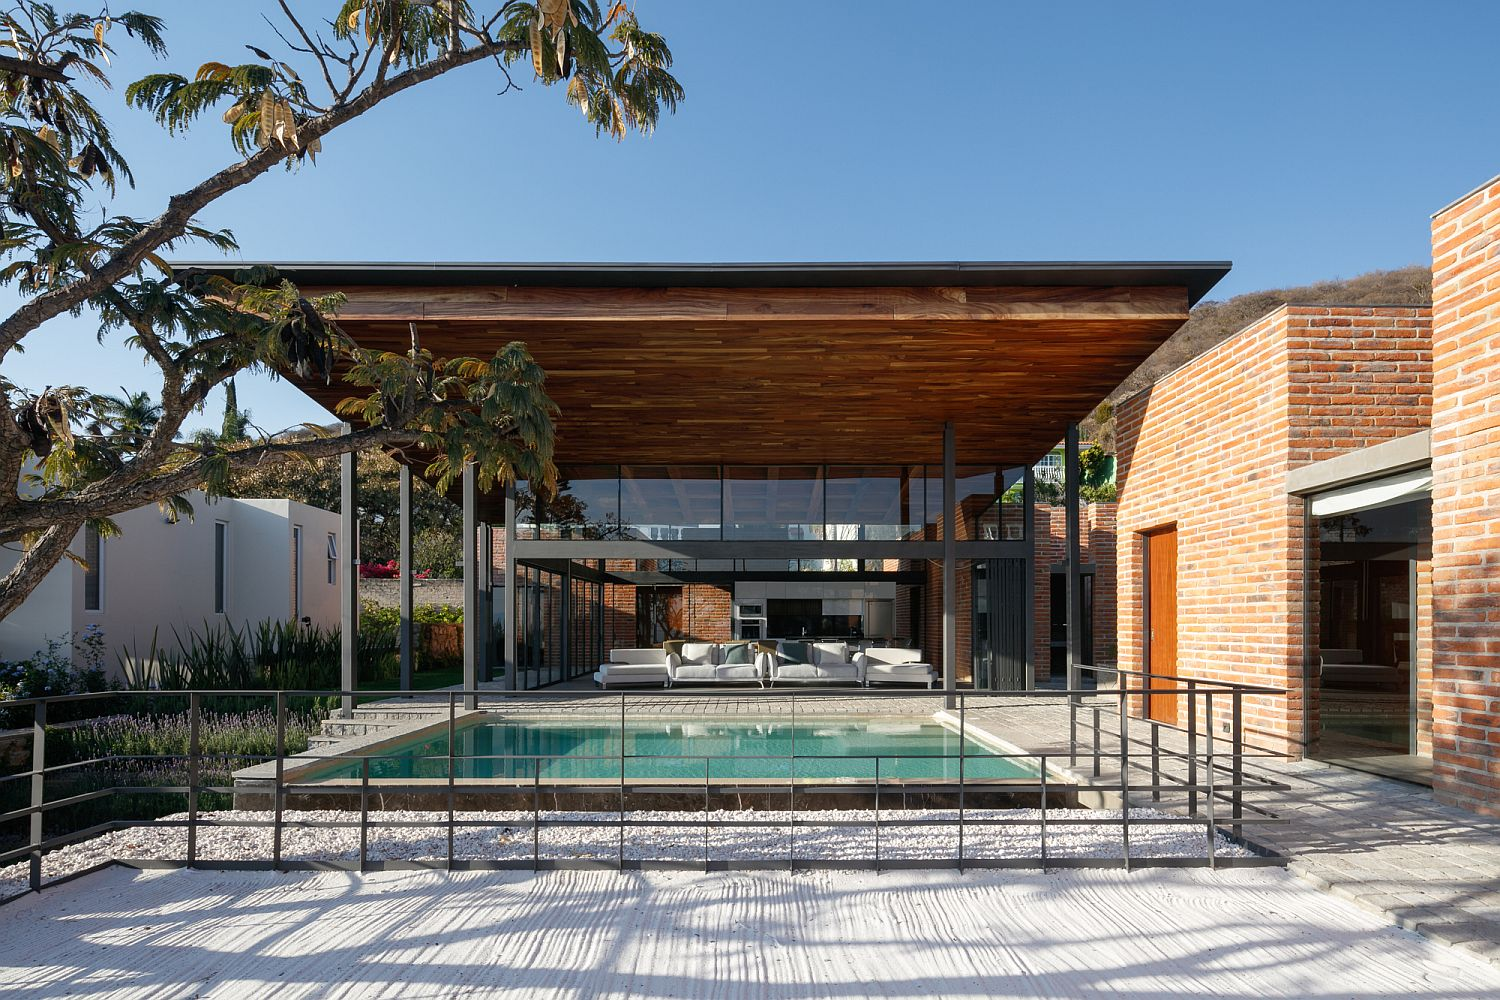 Outdoor pool and deck of the home with ample modern charm